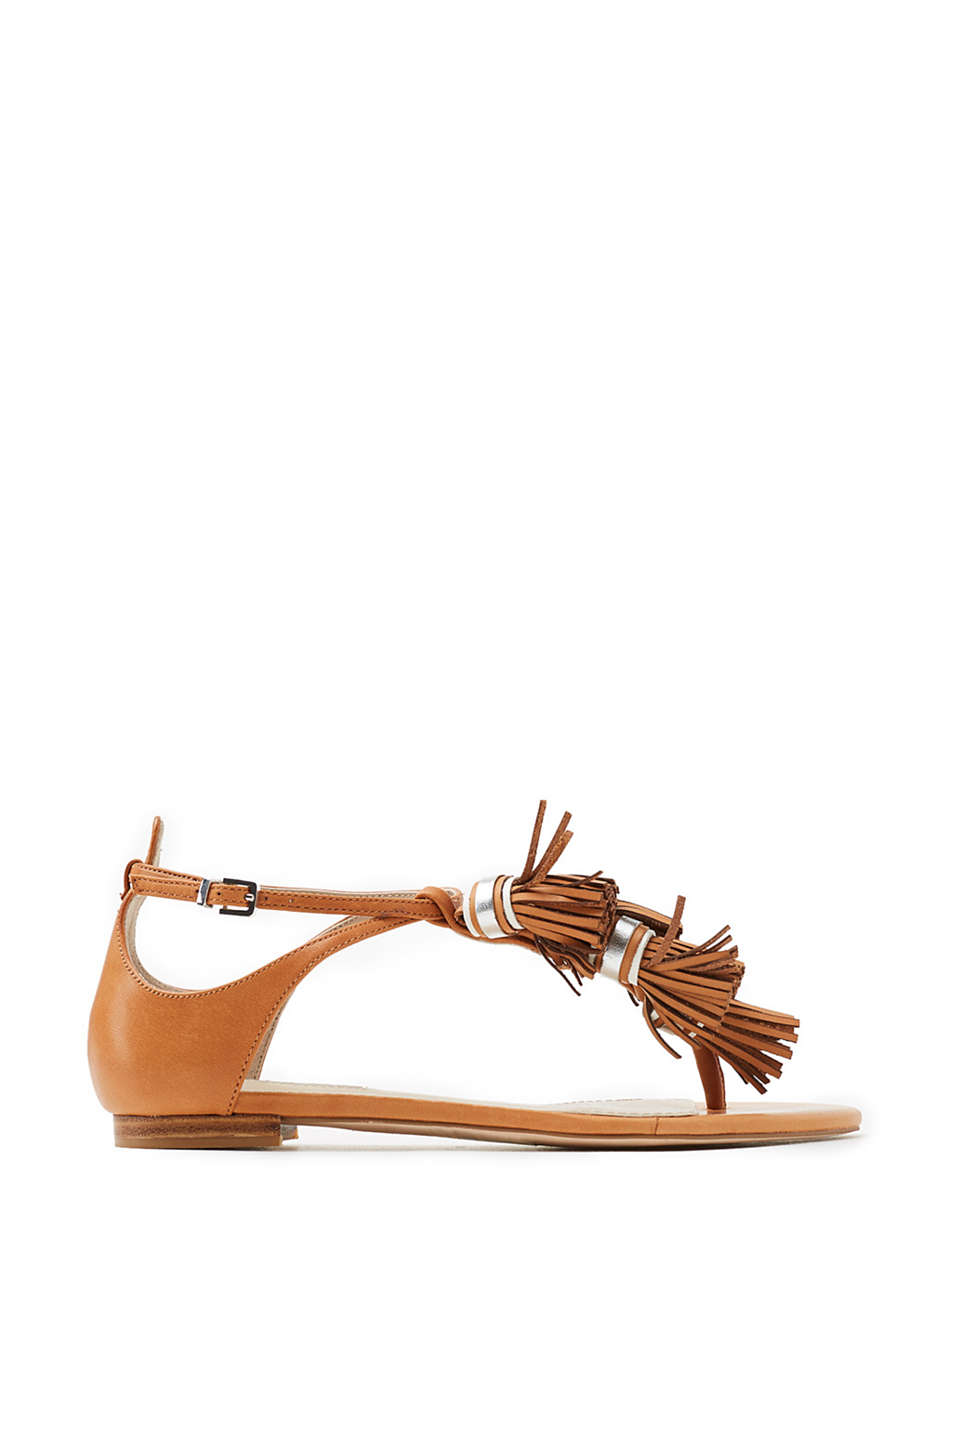 In a trendy, metallic look: sandals with crossed-over ankle straps, made of cowhide leather